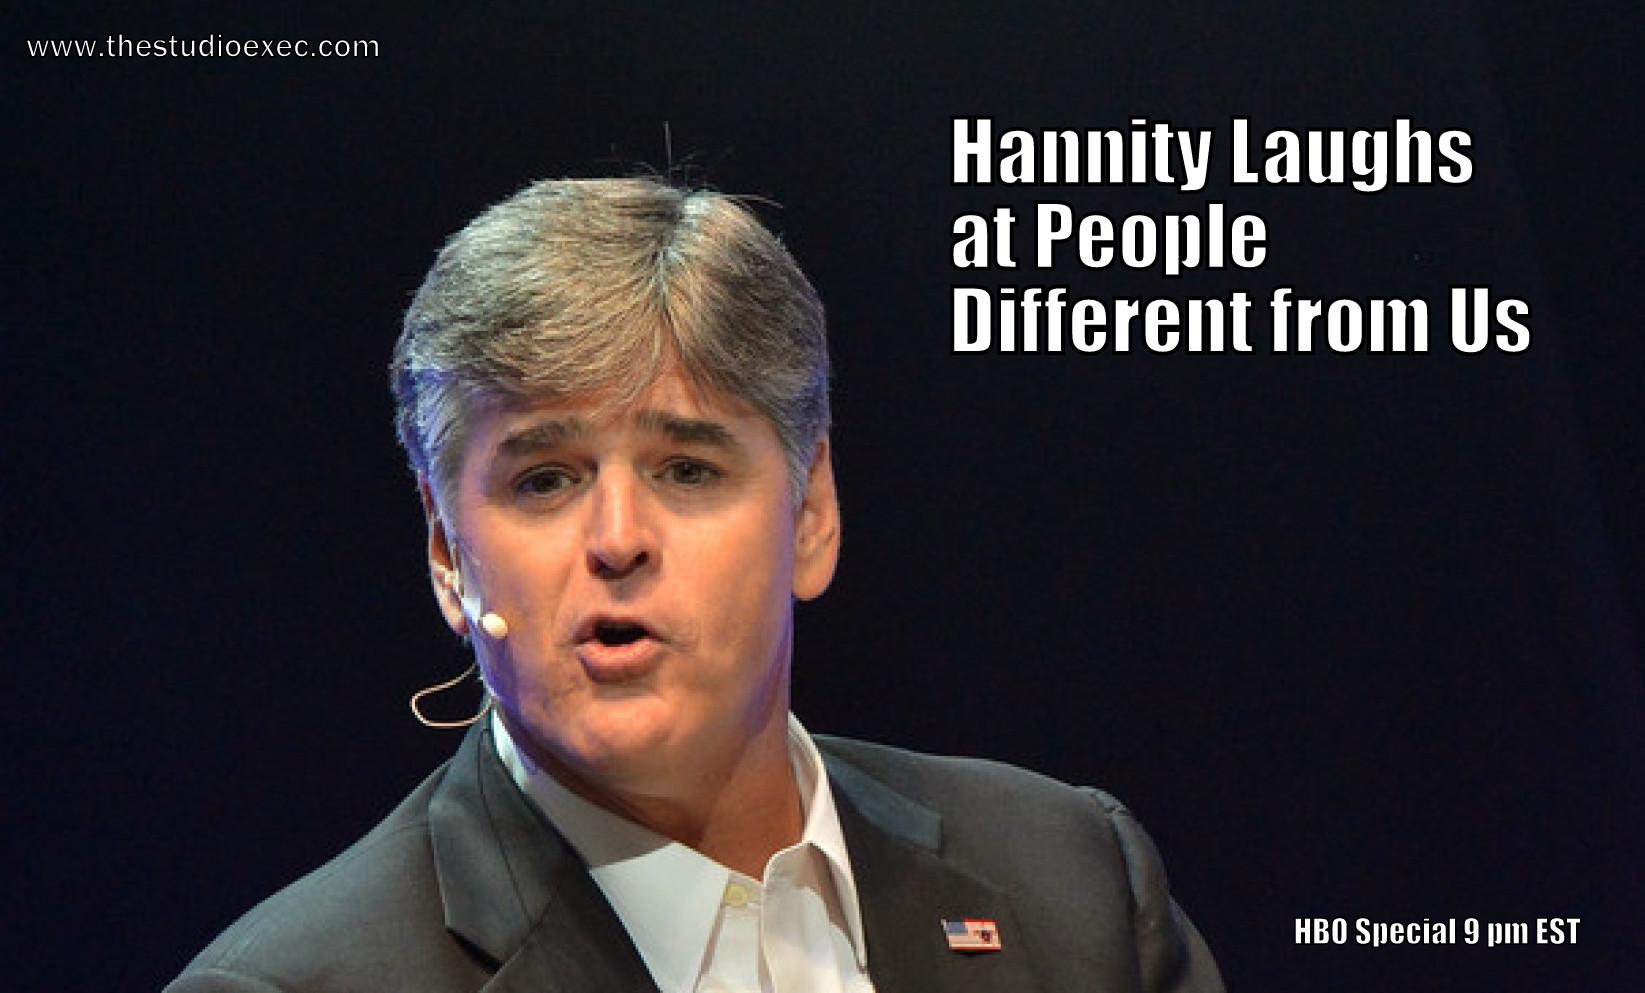 SEAN HANNITY DOES COMEDY SPECIAL ON HBO